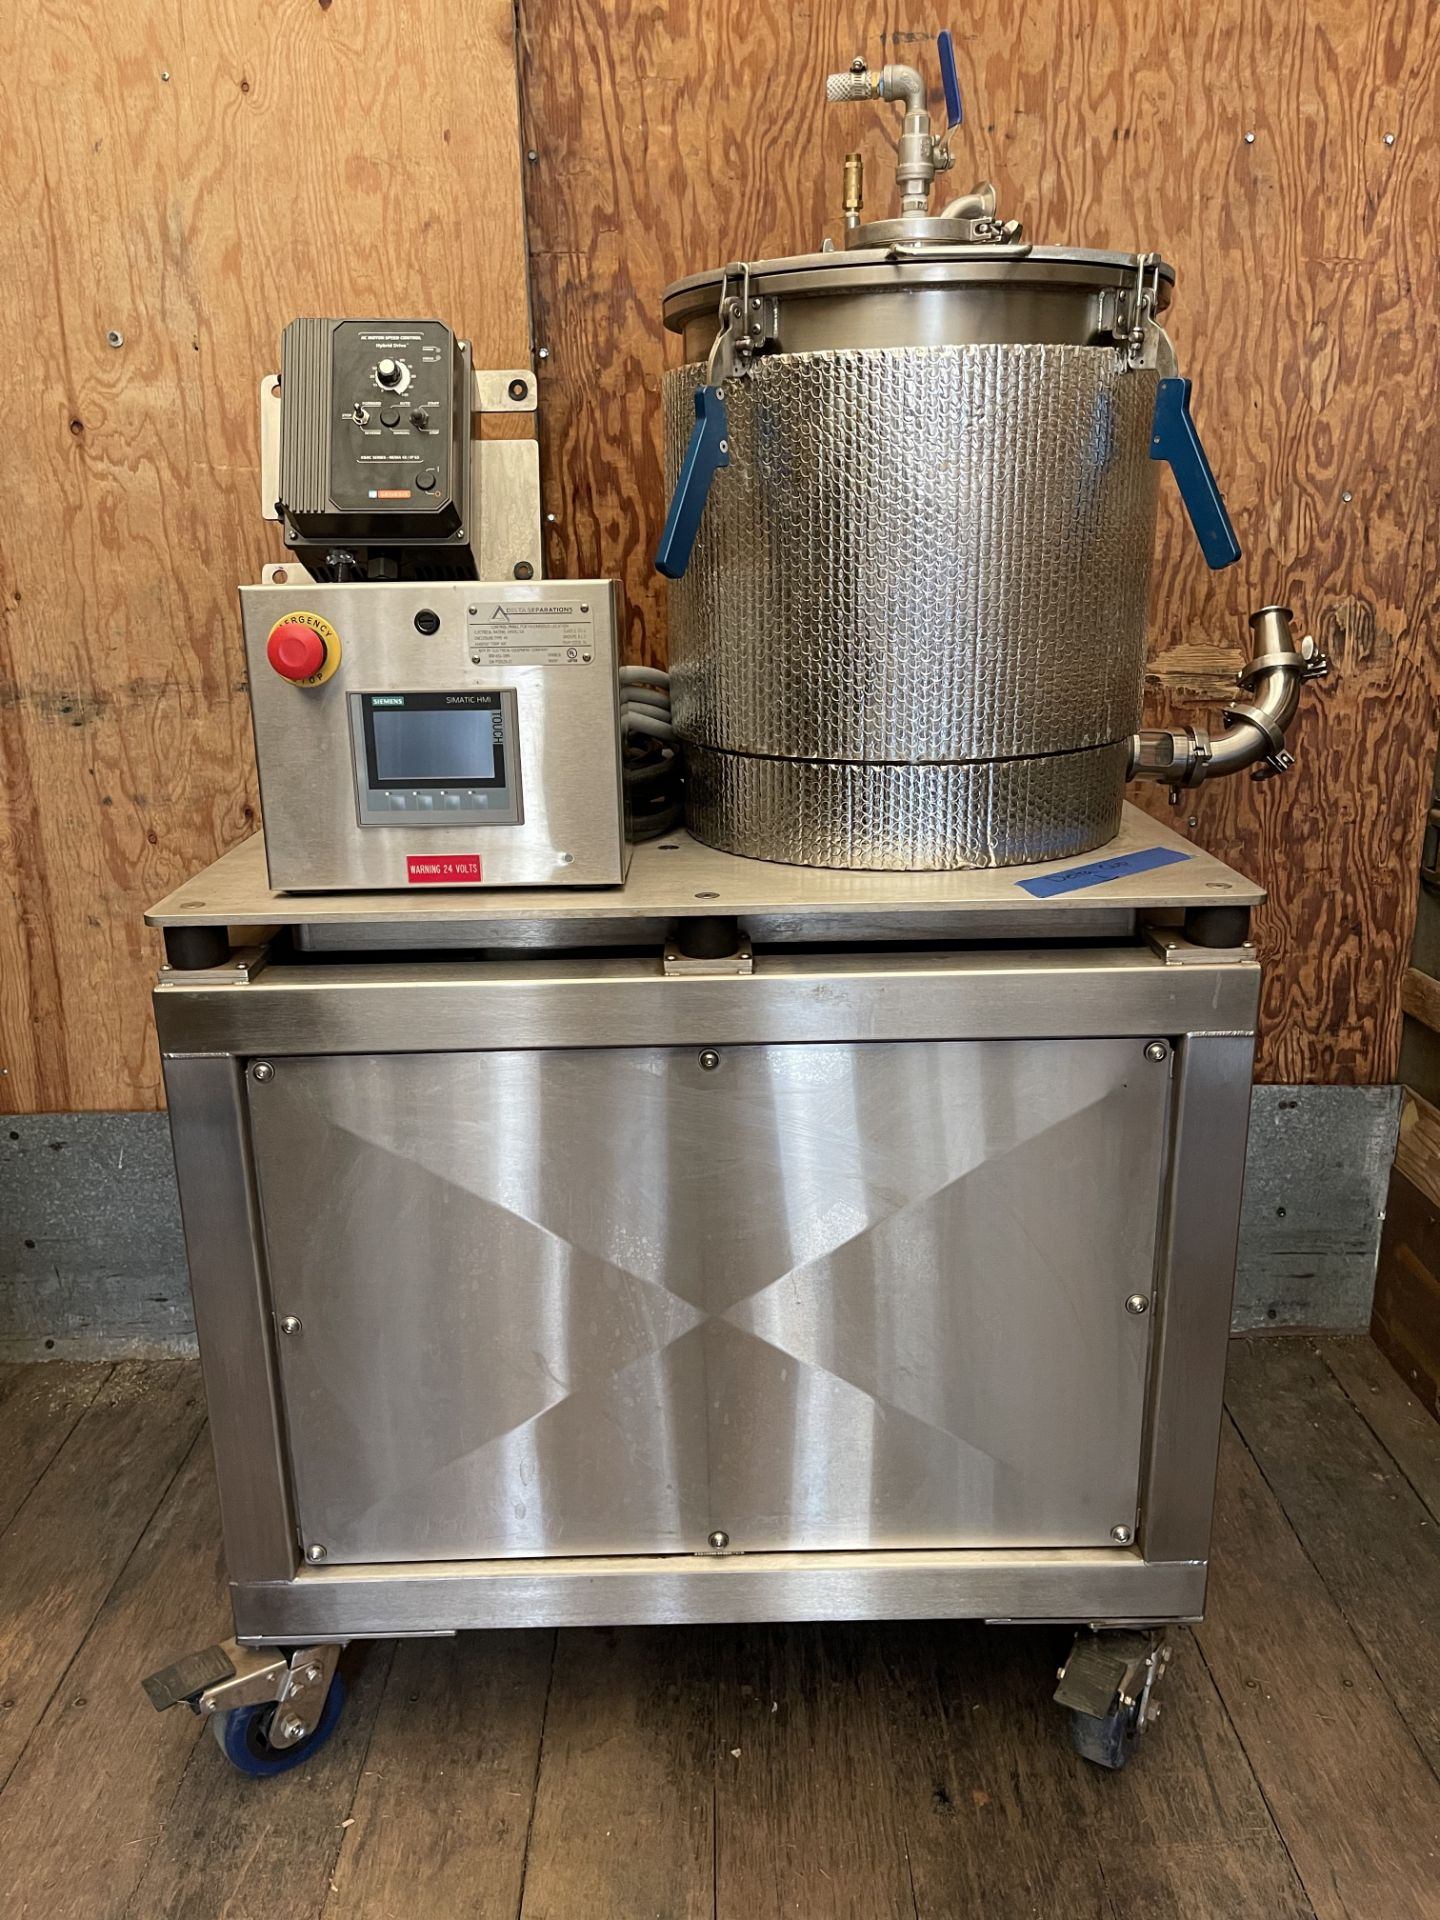 Used- Delta Separations CUP-15 Ethanol Extraction System. Capacity: 8-14 lbs/batch w/ (3) Kegs - Image 2 of 22